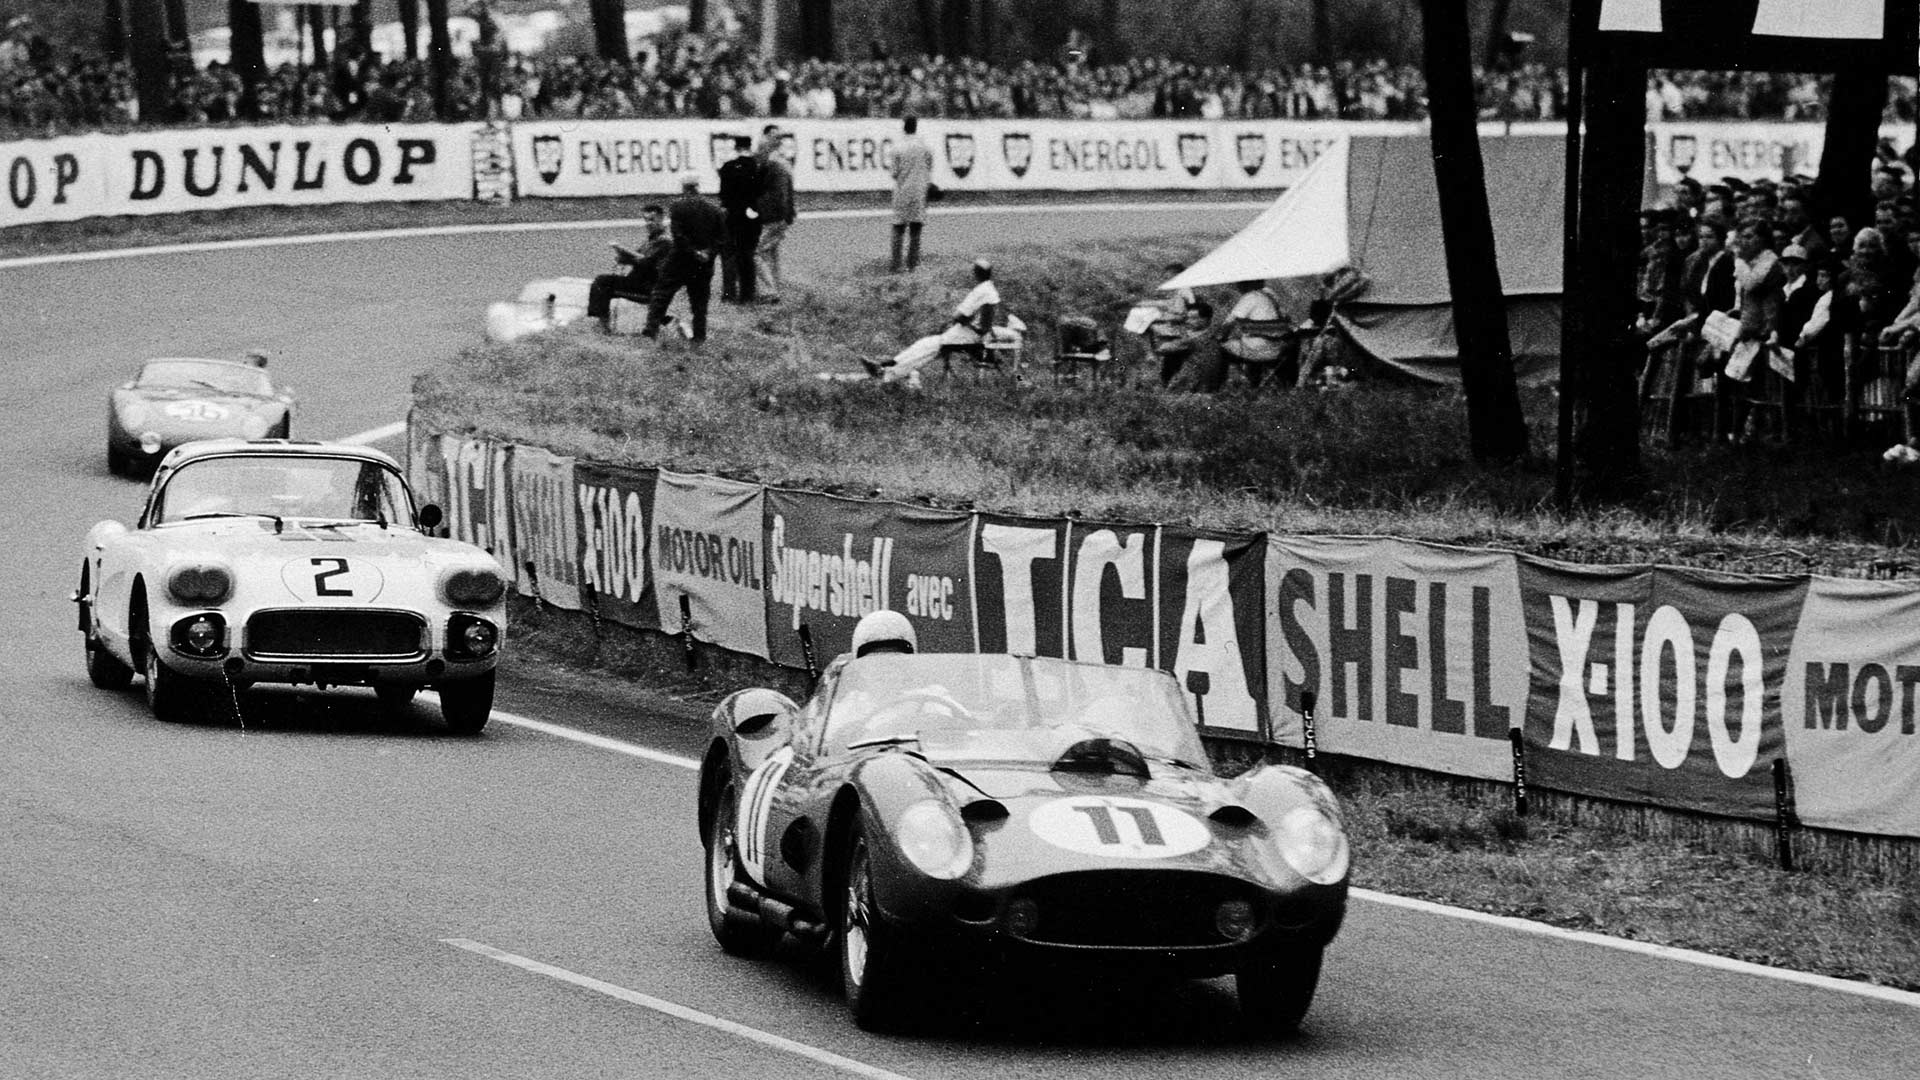 Ferrari was the marque to beat at Le Mans